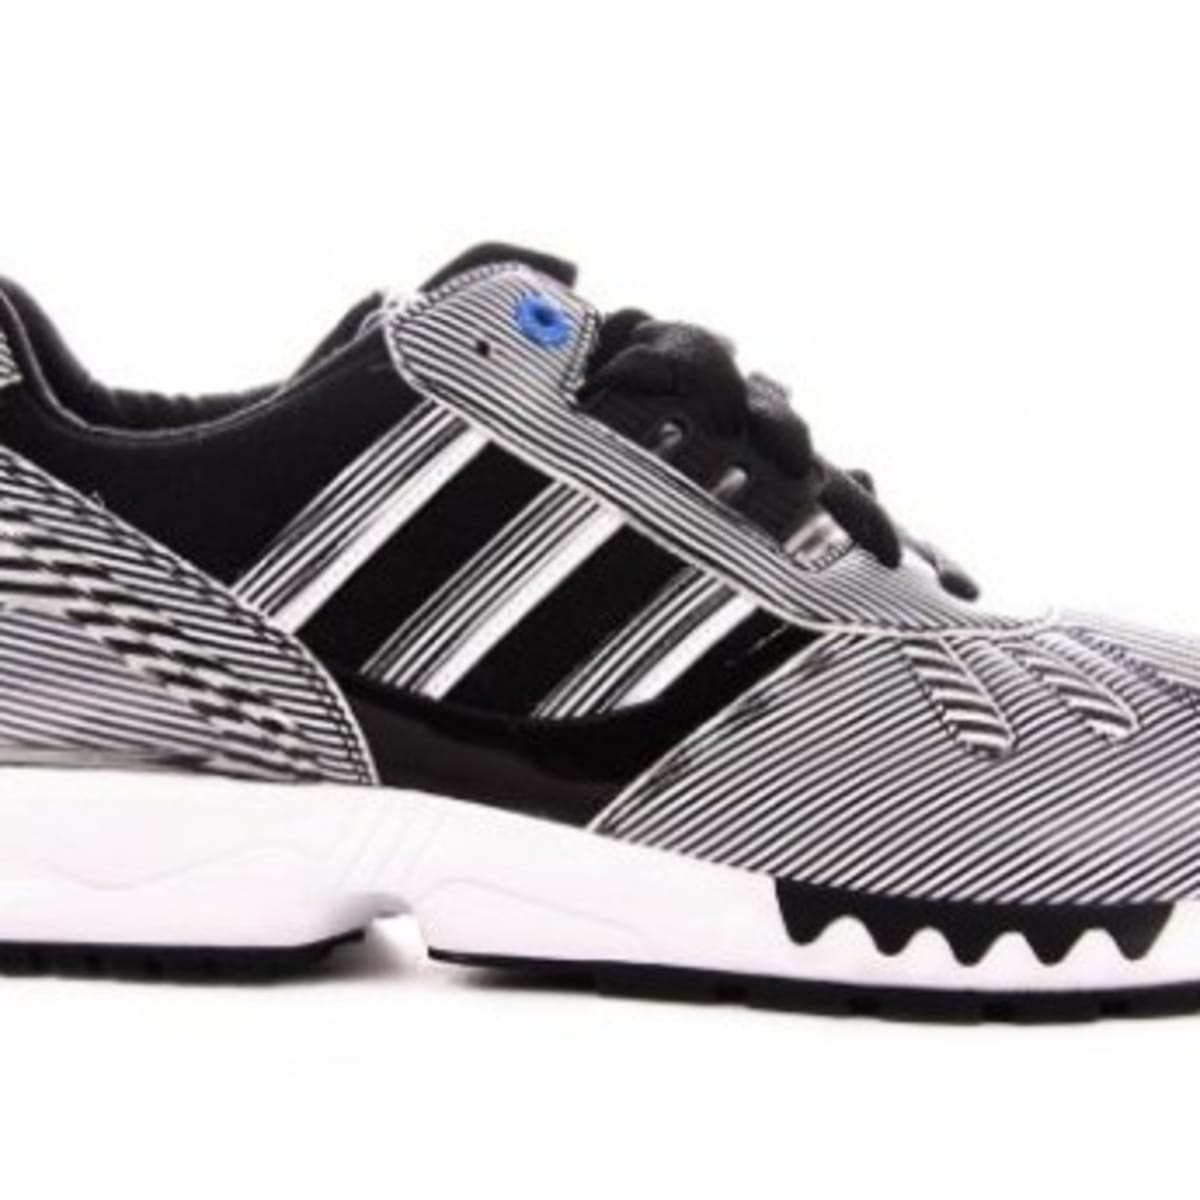 Adidas Zx 7500 On Sale, UP TO 59% OFF